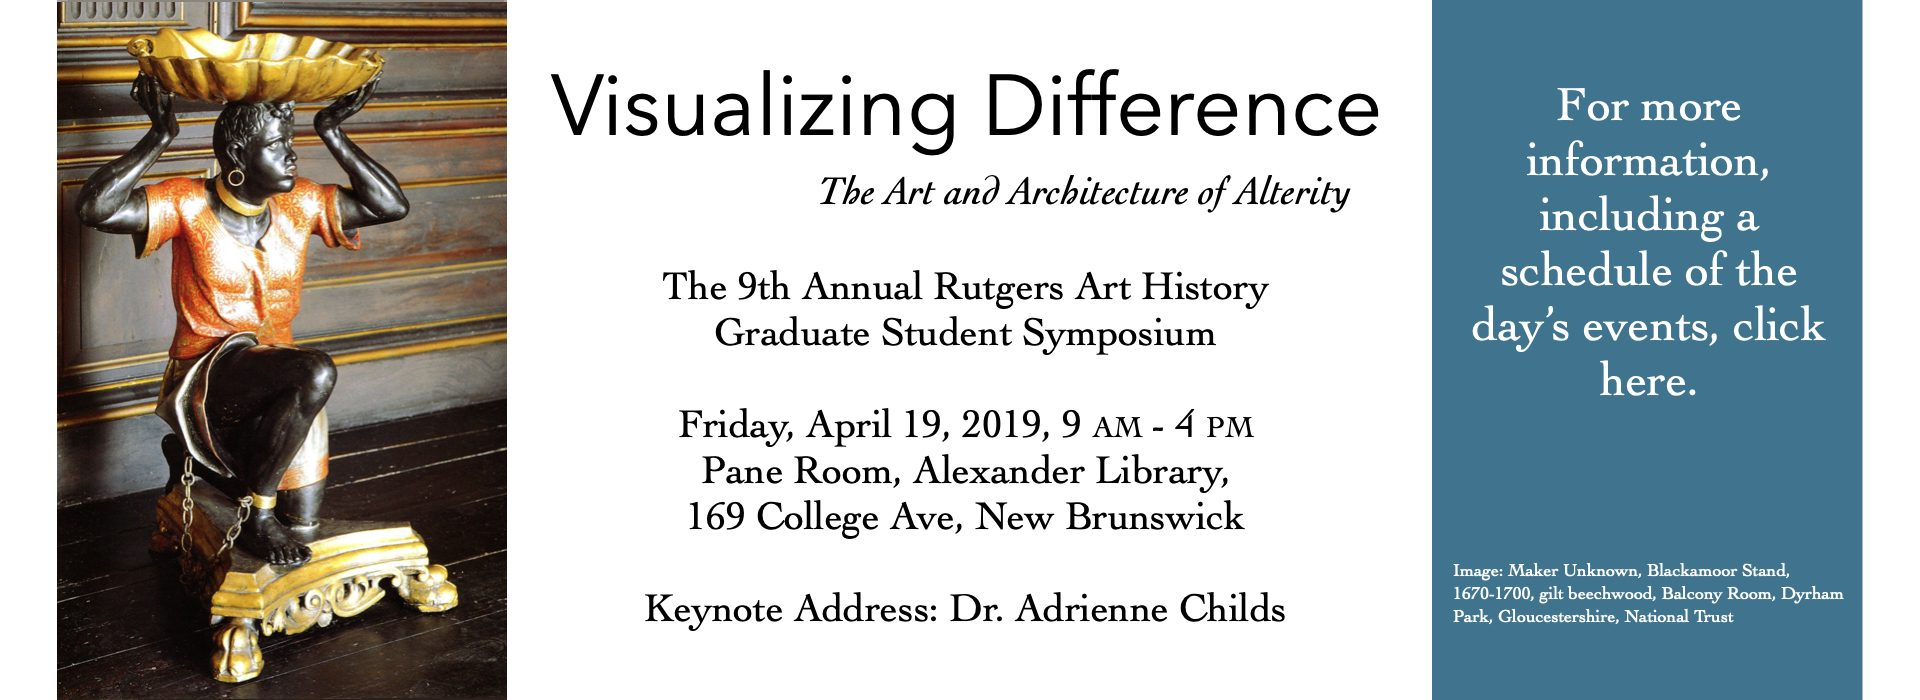 Permalink to: Annual Rutgers Art History Graduate Student Symposium: Visualizing Difference